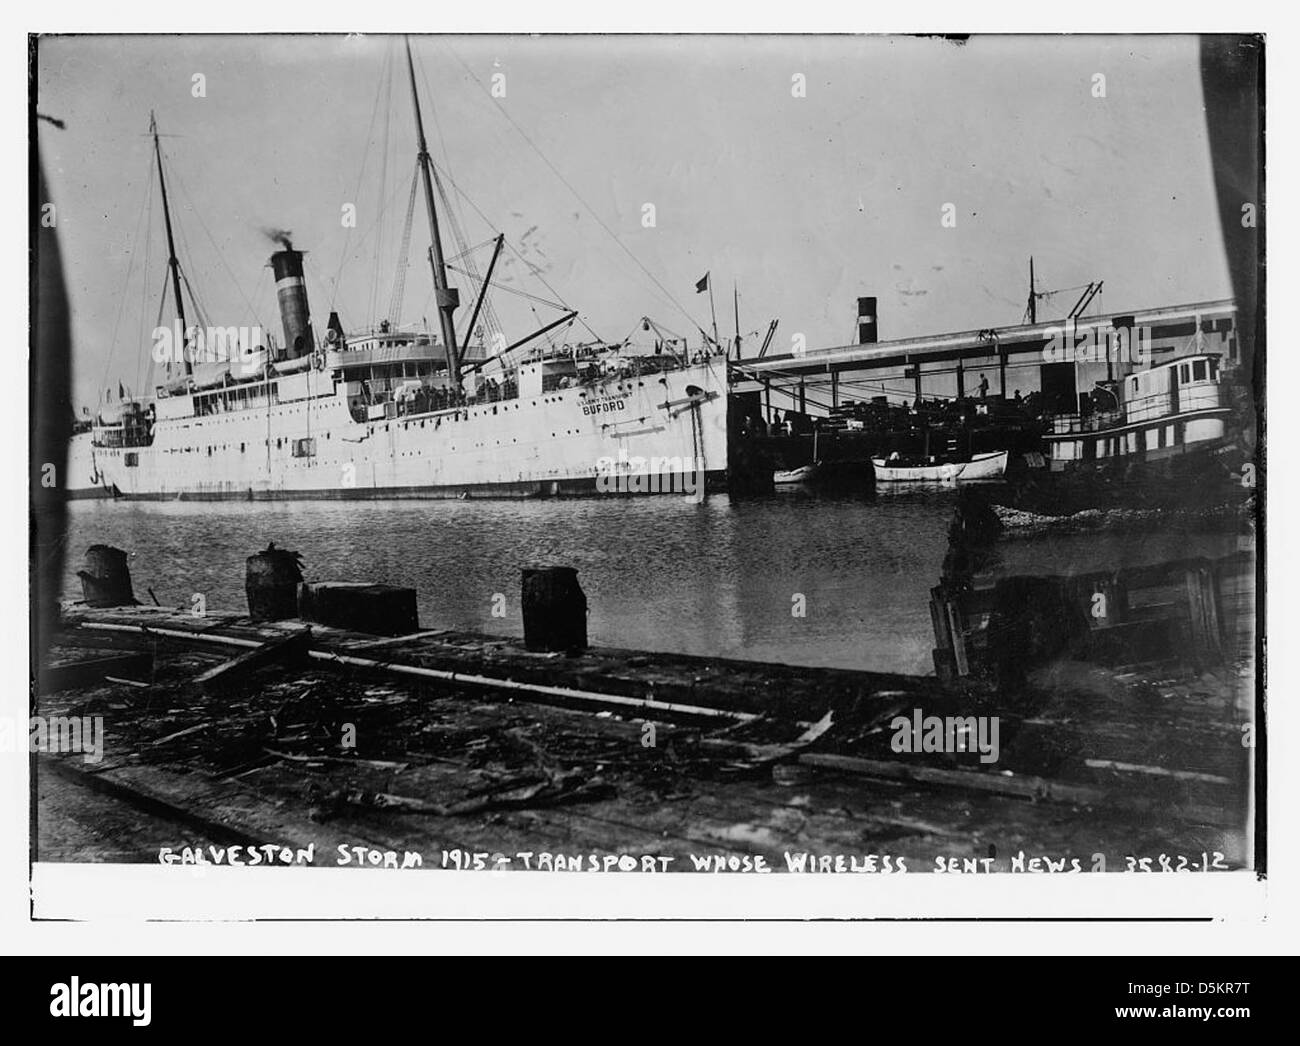 Galveston Storm, 1915 -- Transport whose wireless sent news [BUFORD] (LOC) - Stock Image